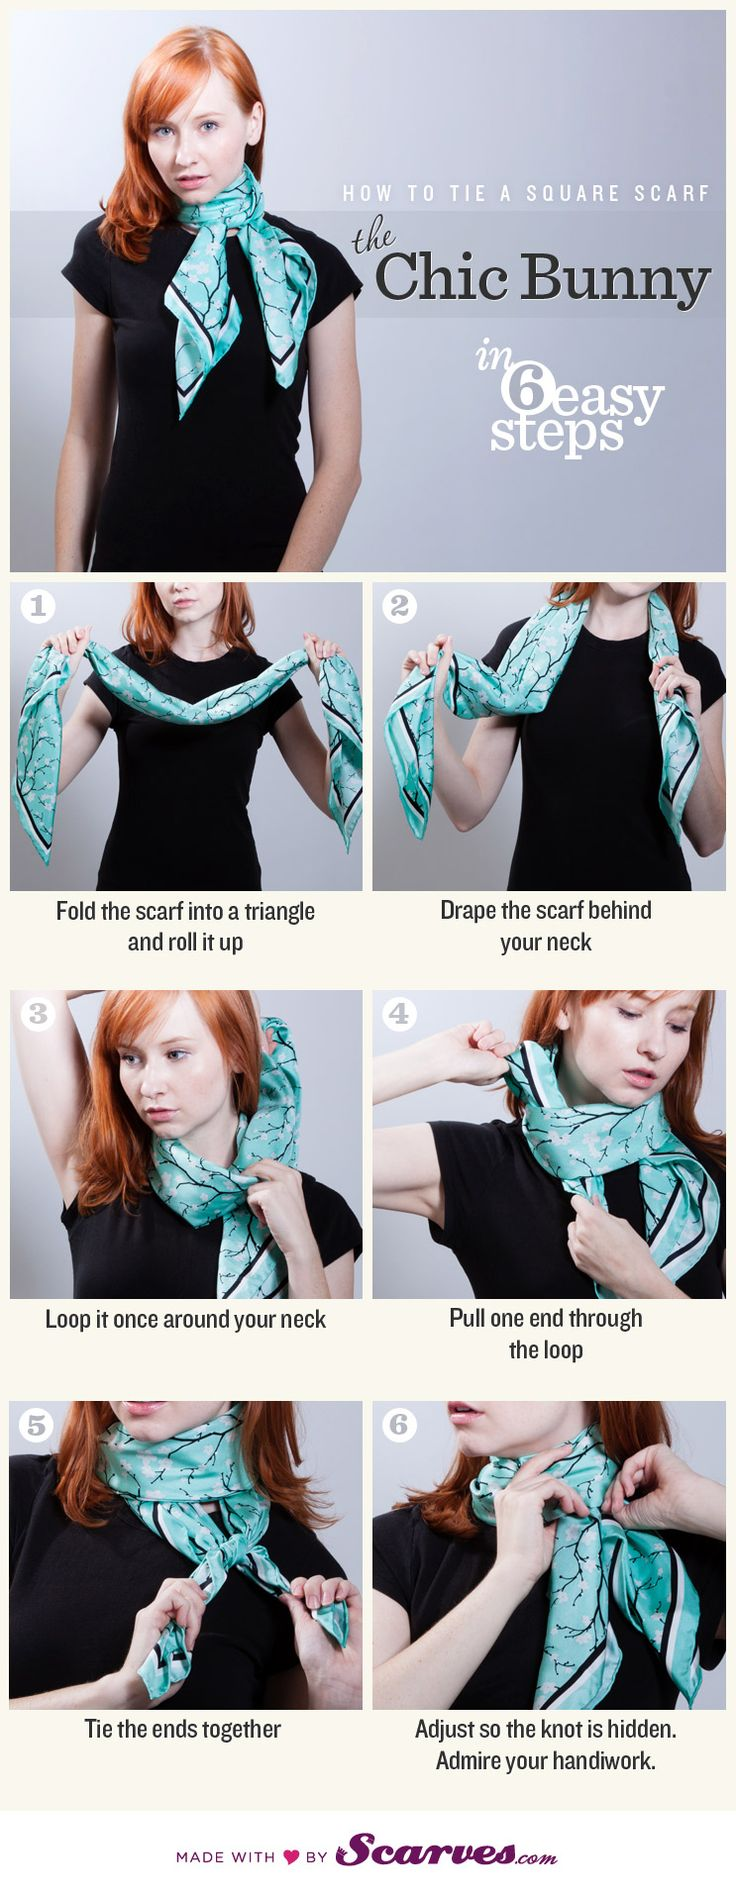 How to Tie a Scarf: The Chic Bunny - - http://www.scarves.com/how-to-tie-a-scarf/chic-bunny via @Diane Haan Lohmeyer Ellis.com®